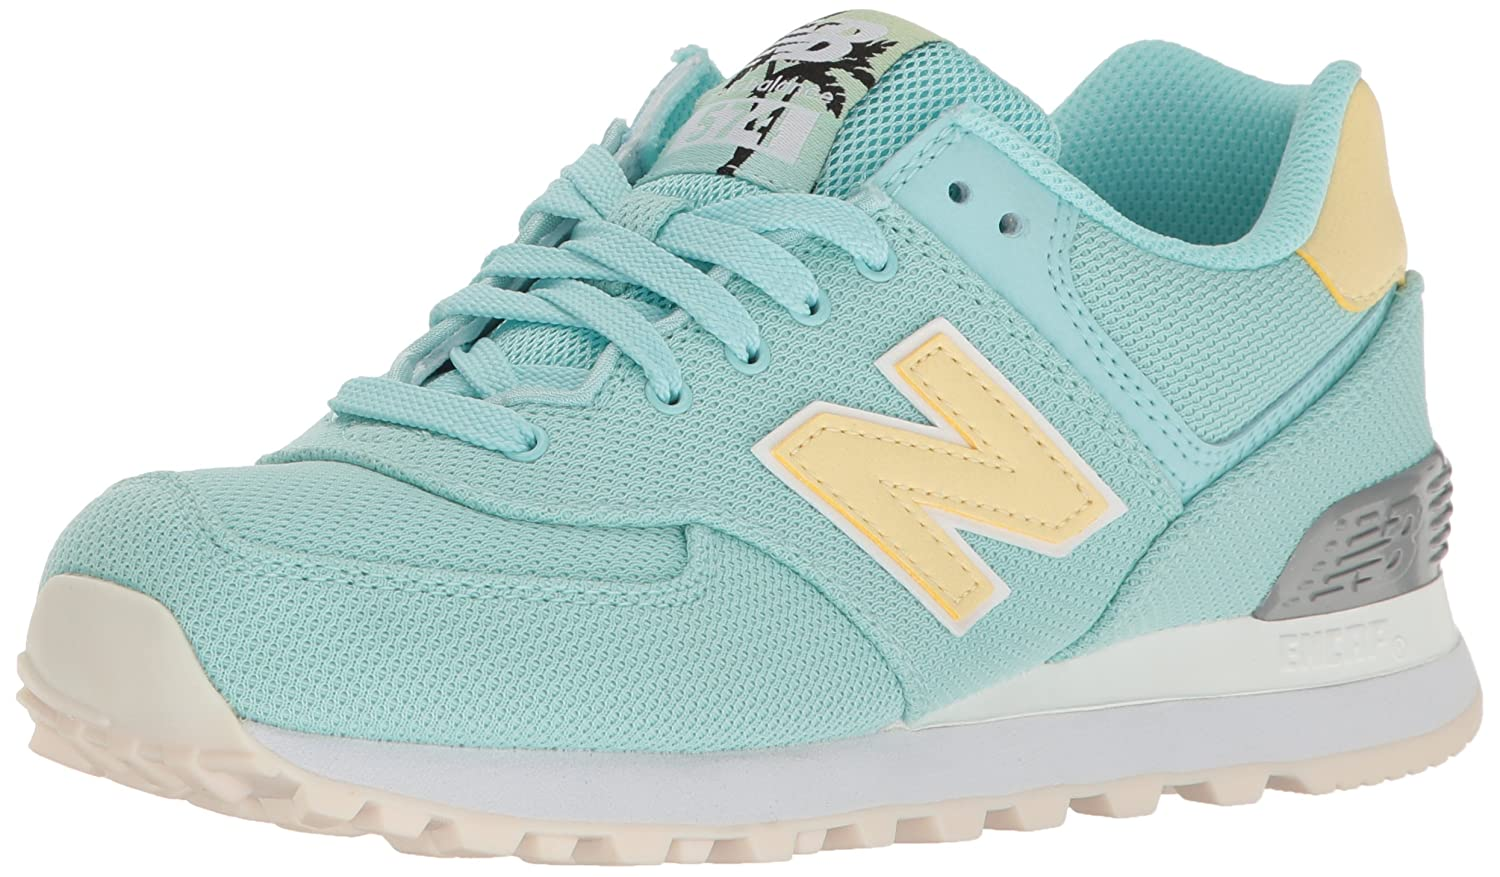 new arrival 922c8 c9a61 New Balance Women's 574 Miami Palms Pack Lifestyle Fashion Sneaker